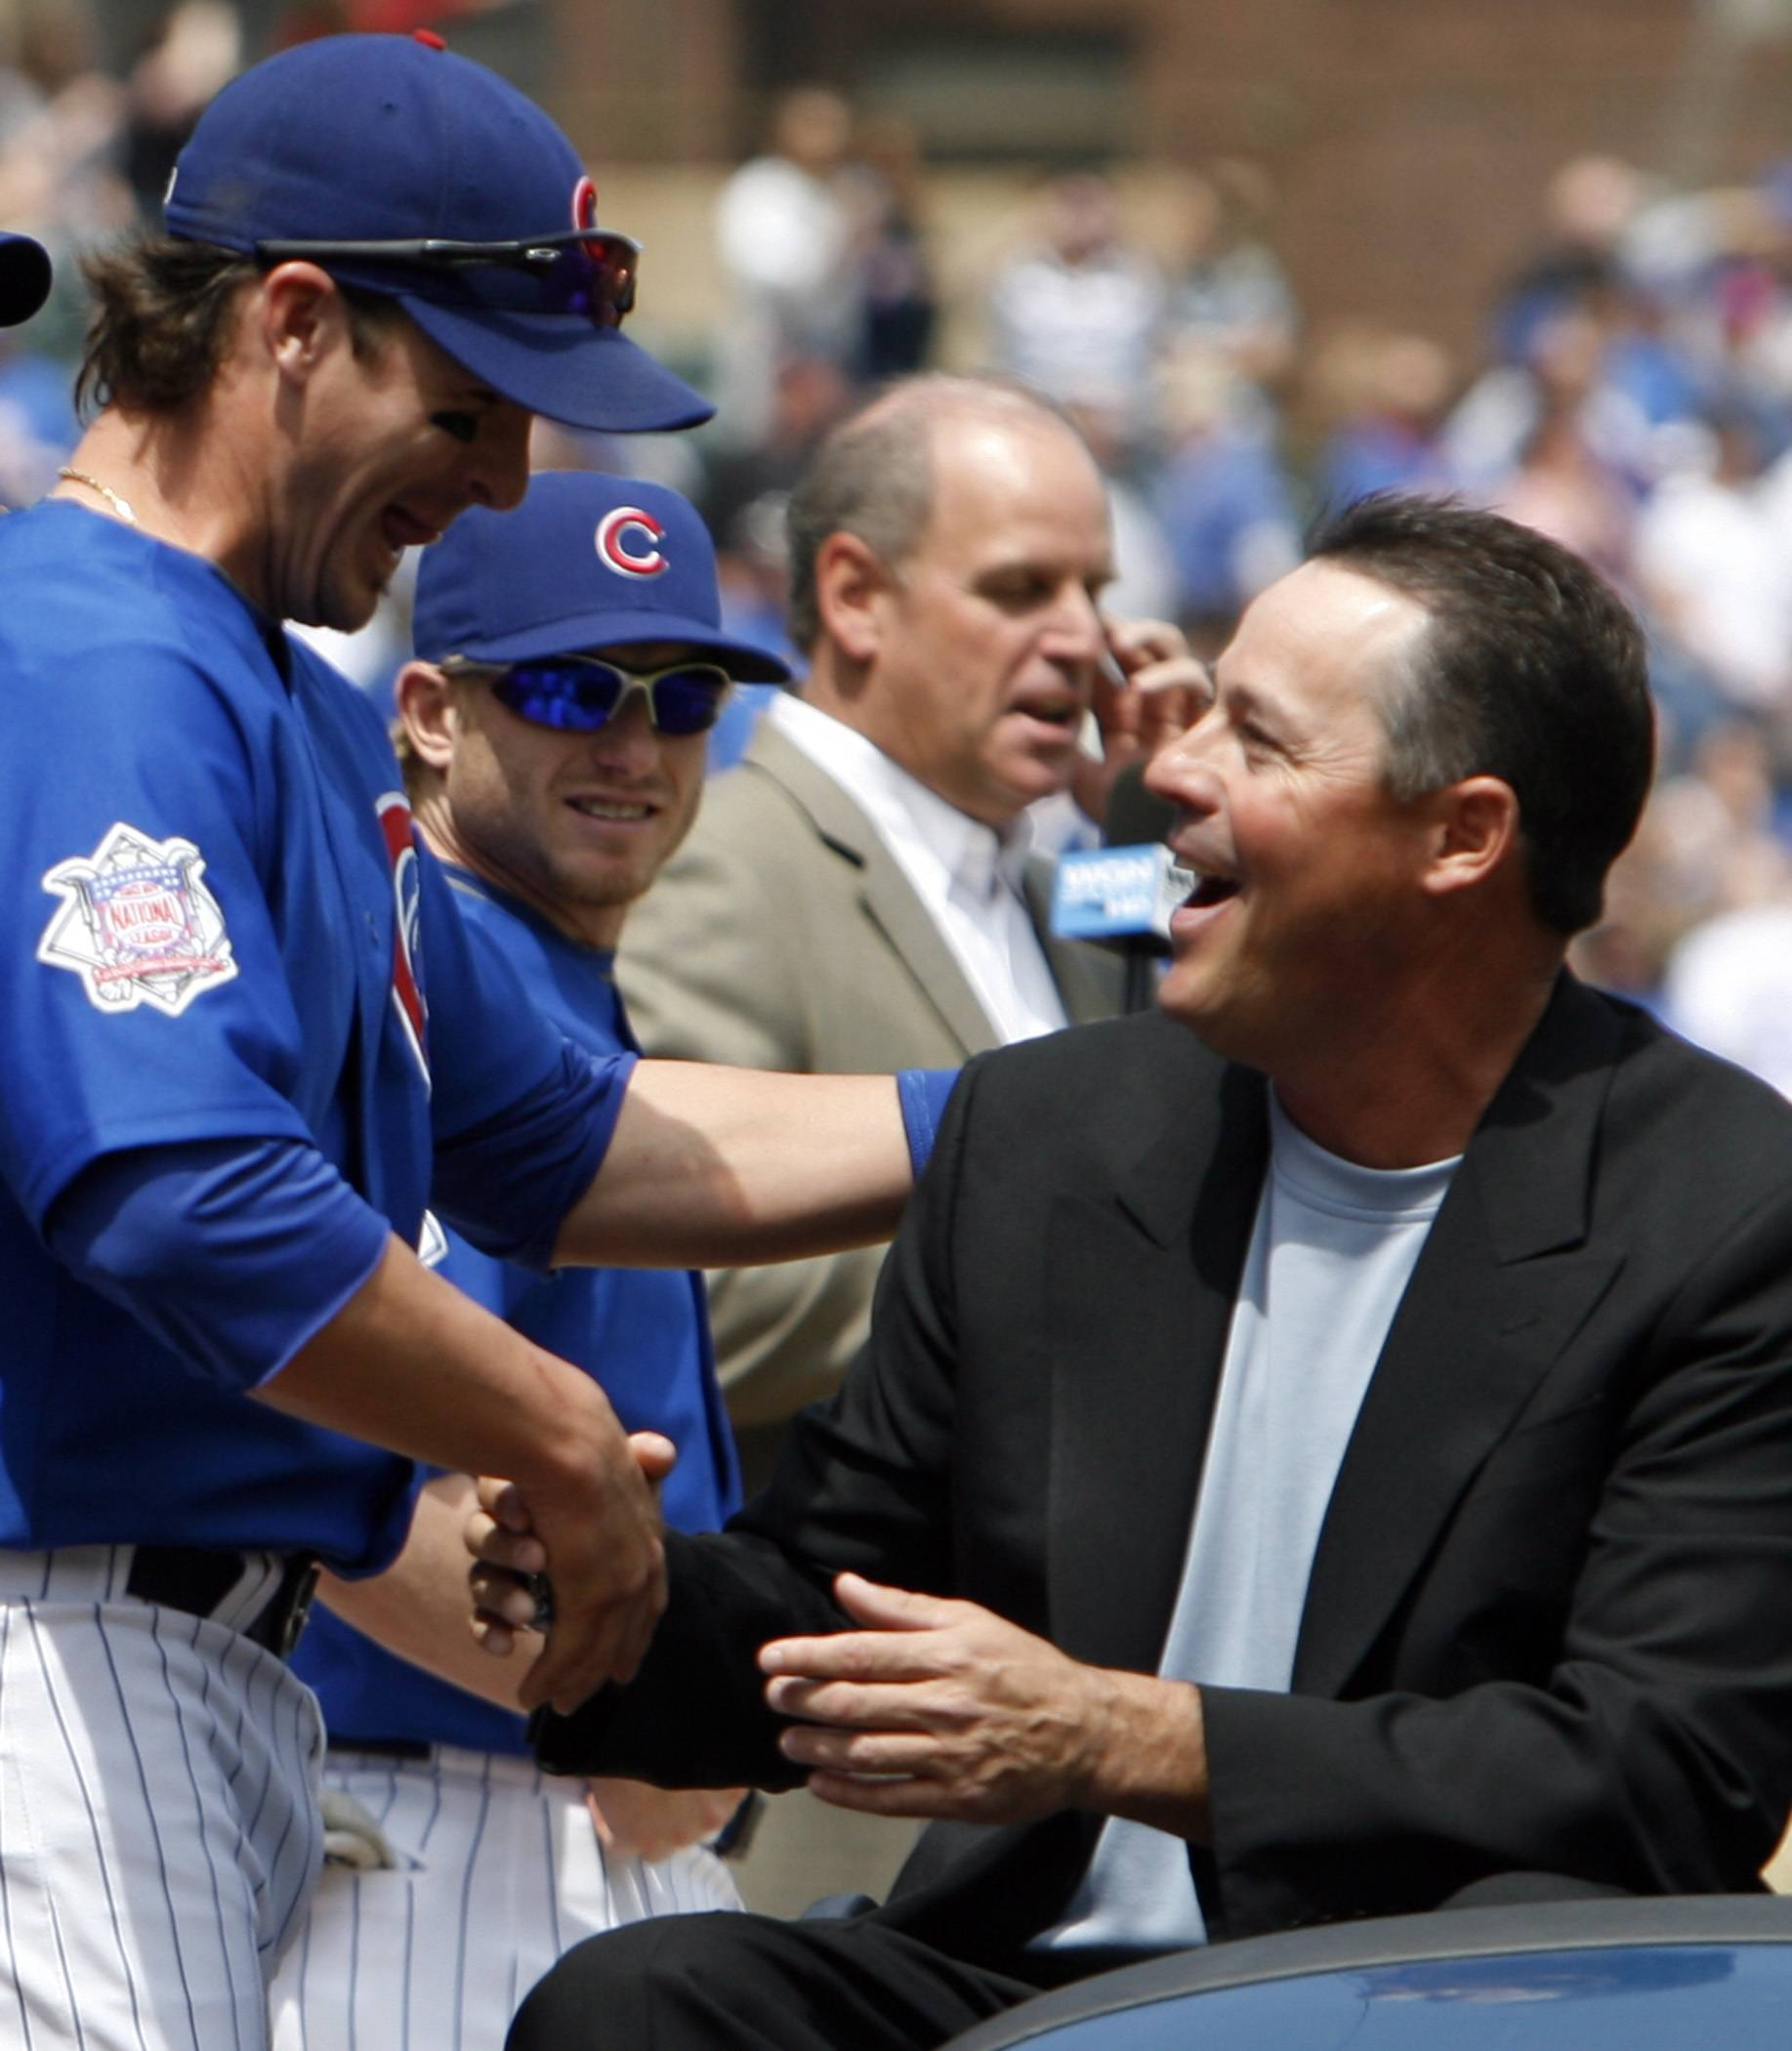 Former Chicago Cubs player Greg Maddux, right, shakes hands with Cubs' Ryan Theriot while celebrating with Ferguson Jenkins (not shown) at Wrigley Field as the Cubs retired the No. 31 both wore with the team, before the Florida Marlins and the Cubs baseball game, Sunday, May 3, 2009, in Chicago.